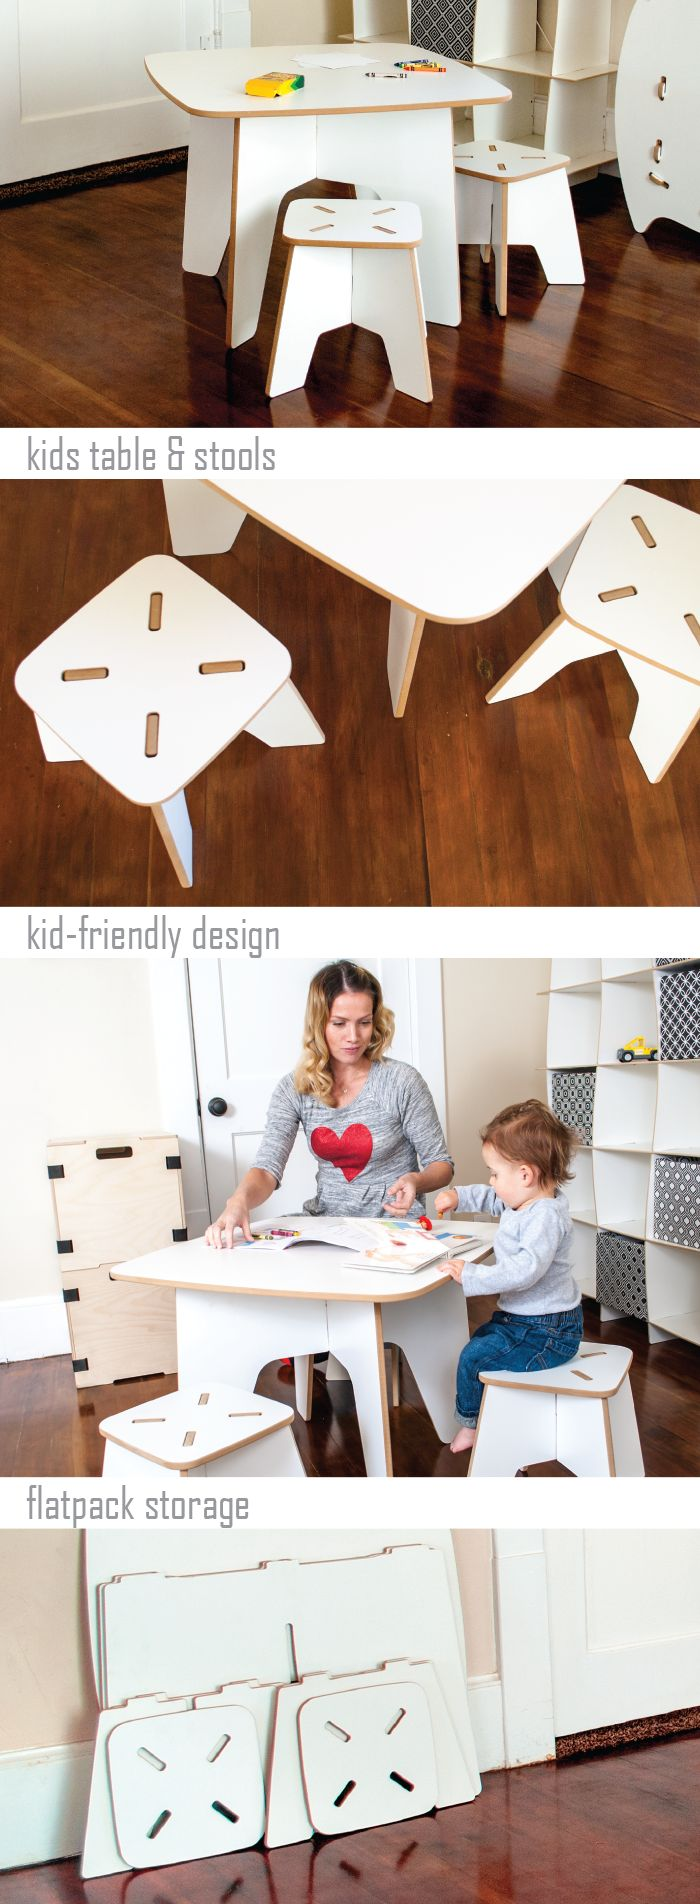 The foldable table and stools is a great way to get the most out of your toddler playroom space.